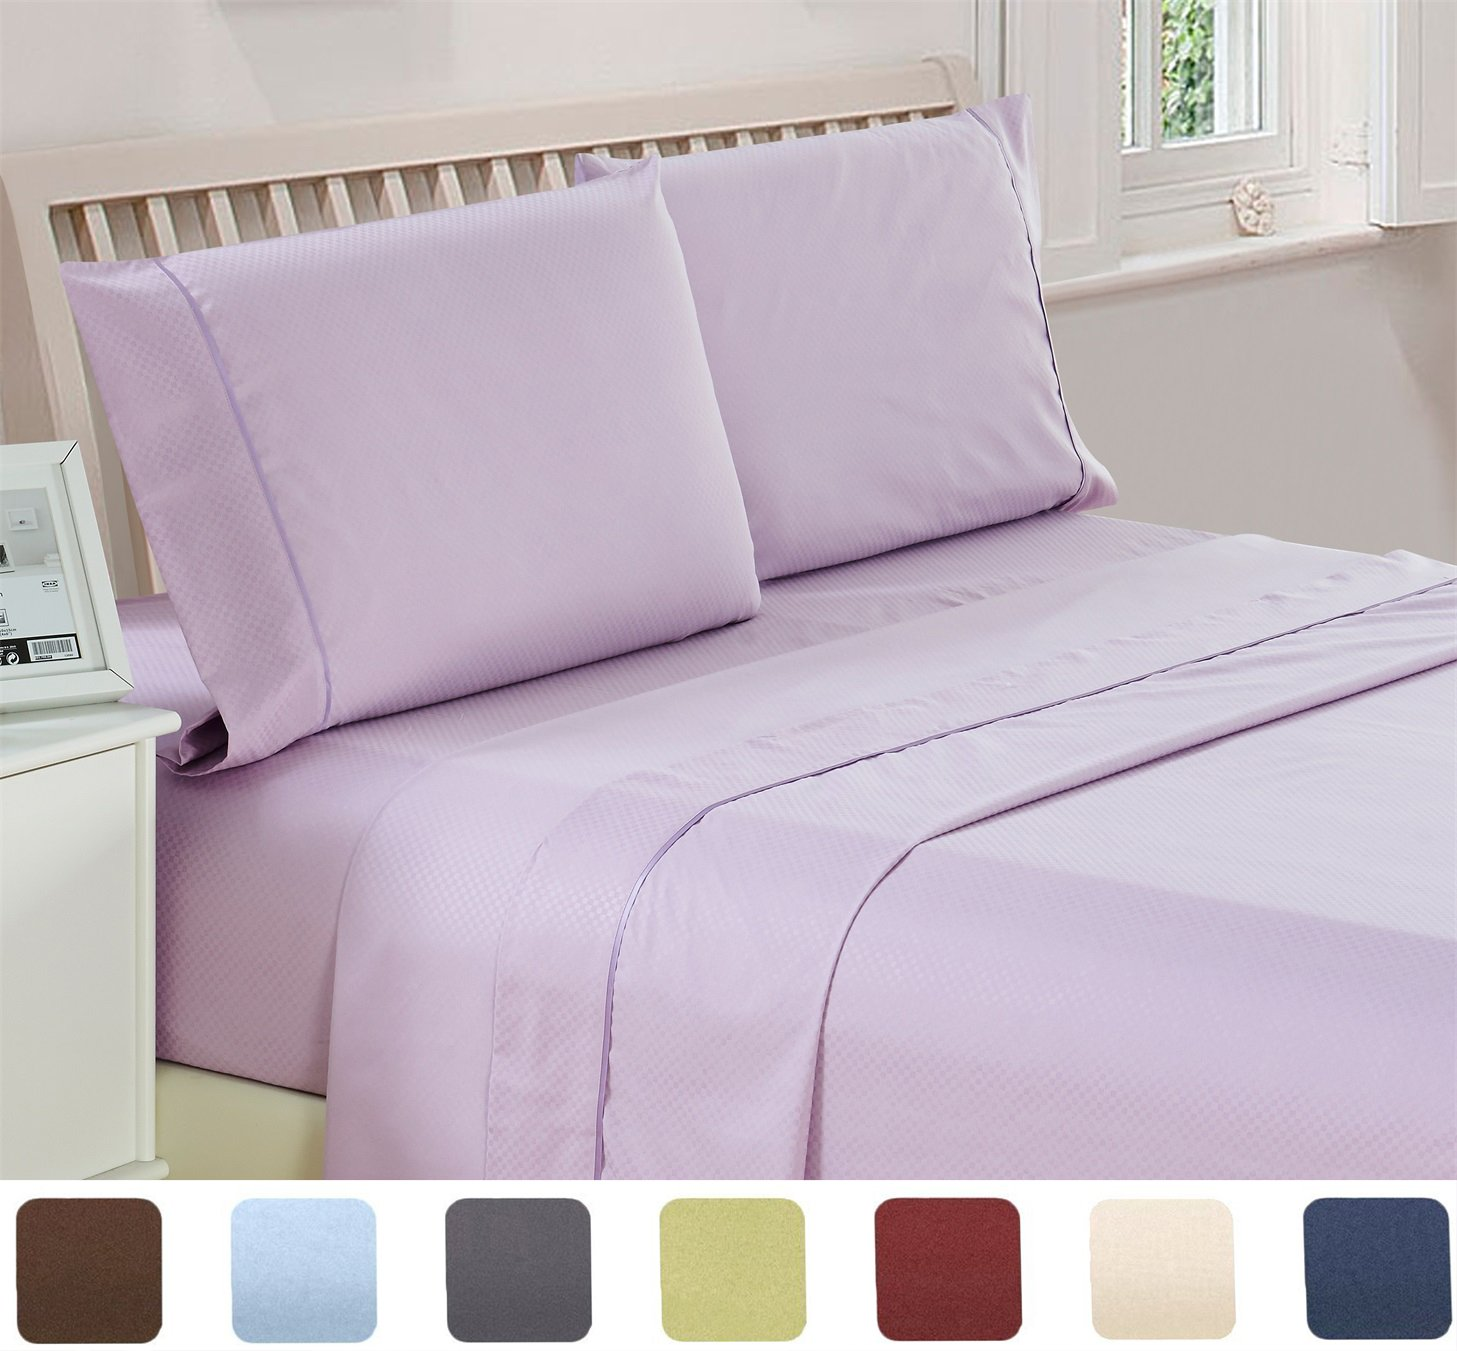 4 Piece Deep Pocket 1800 Series Bed Sheet Set King, Lavender